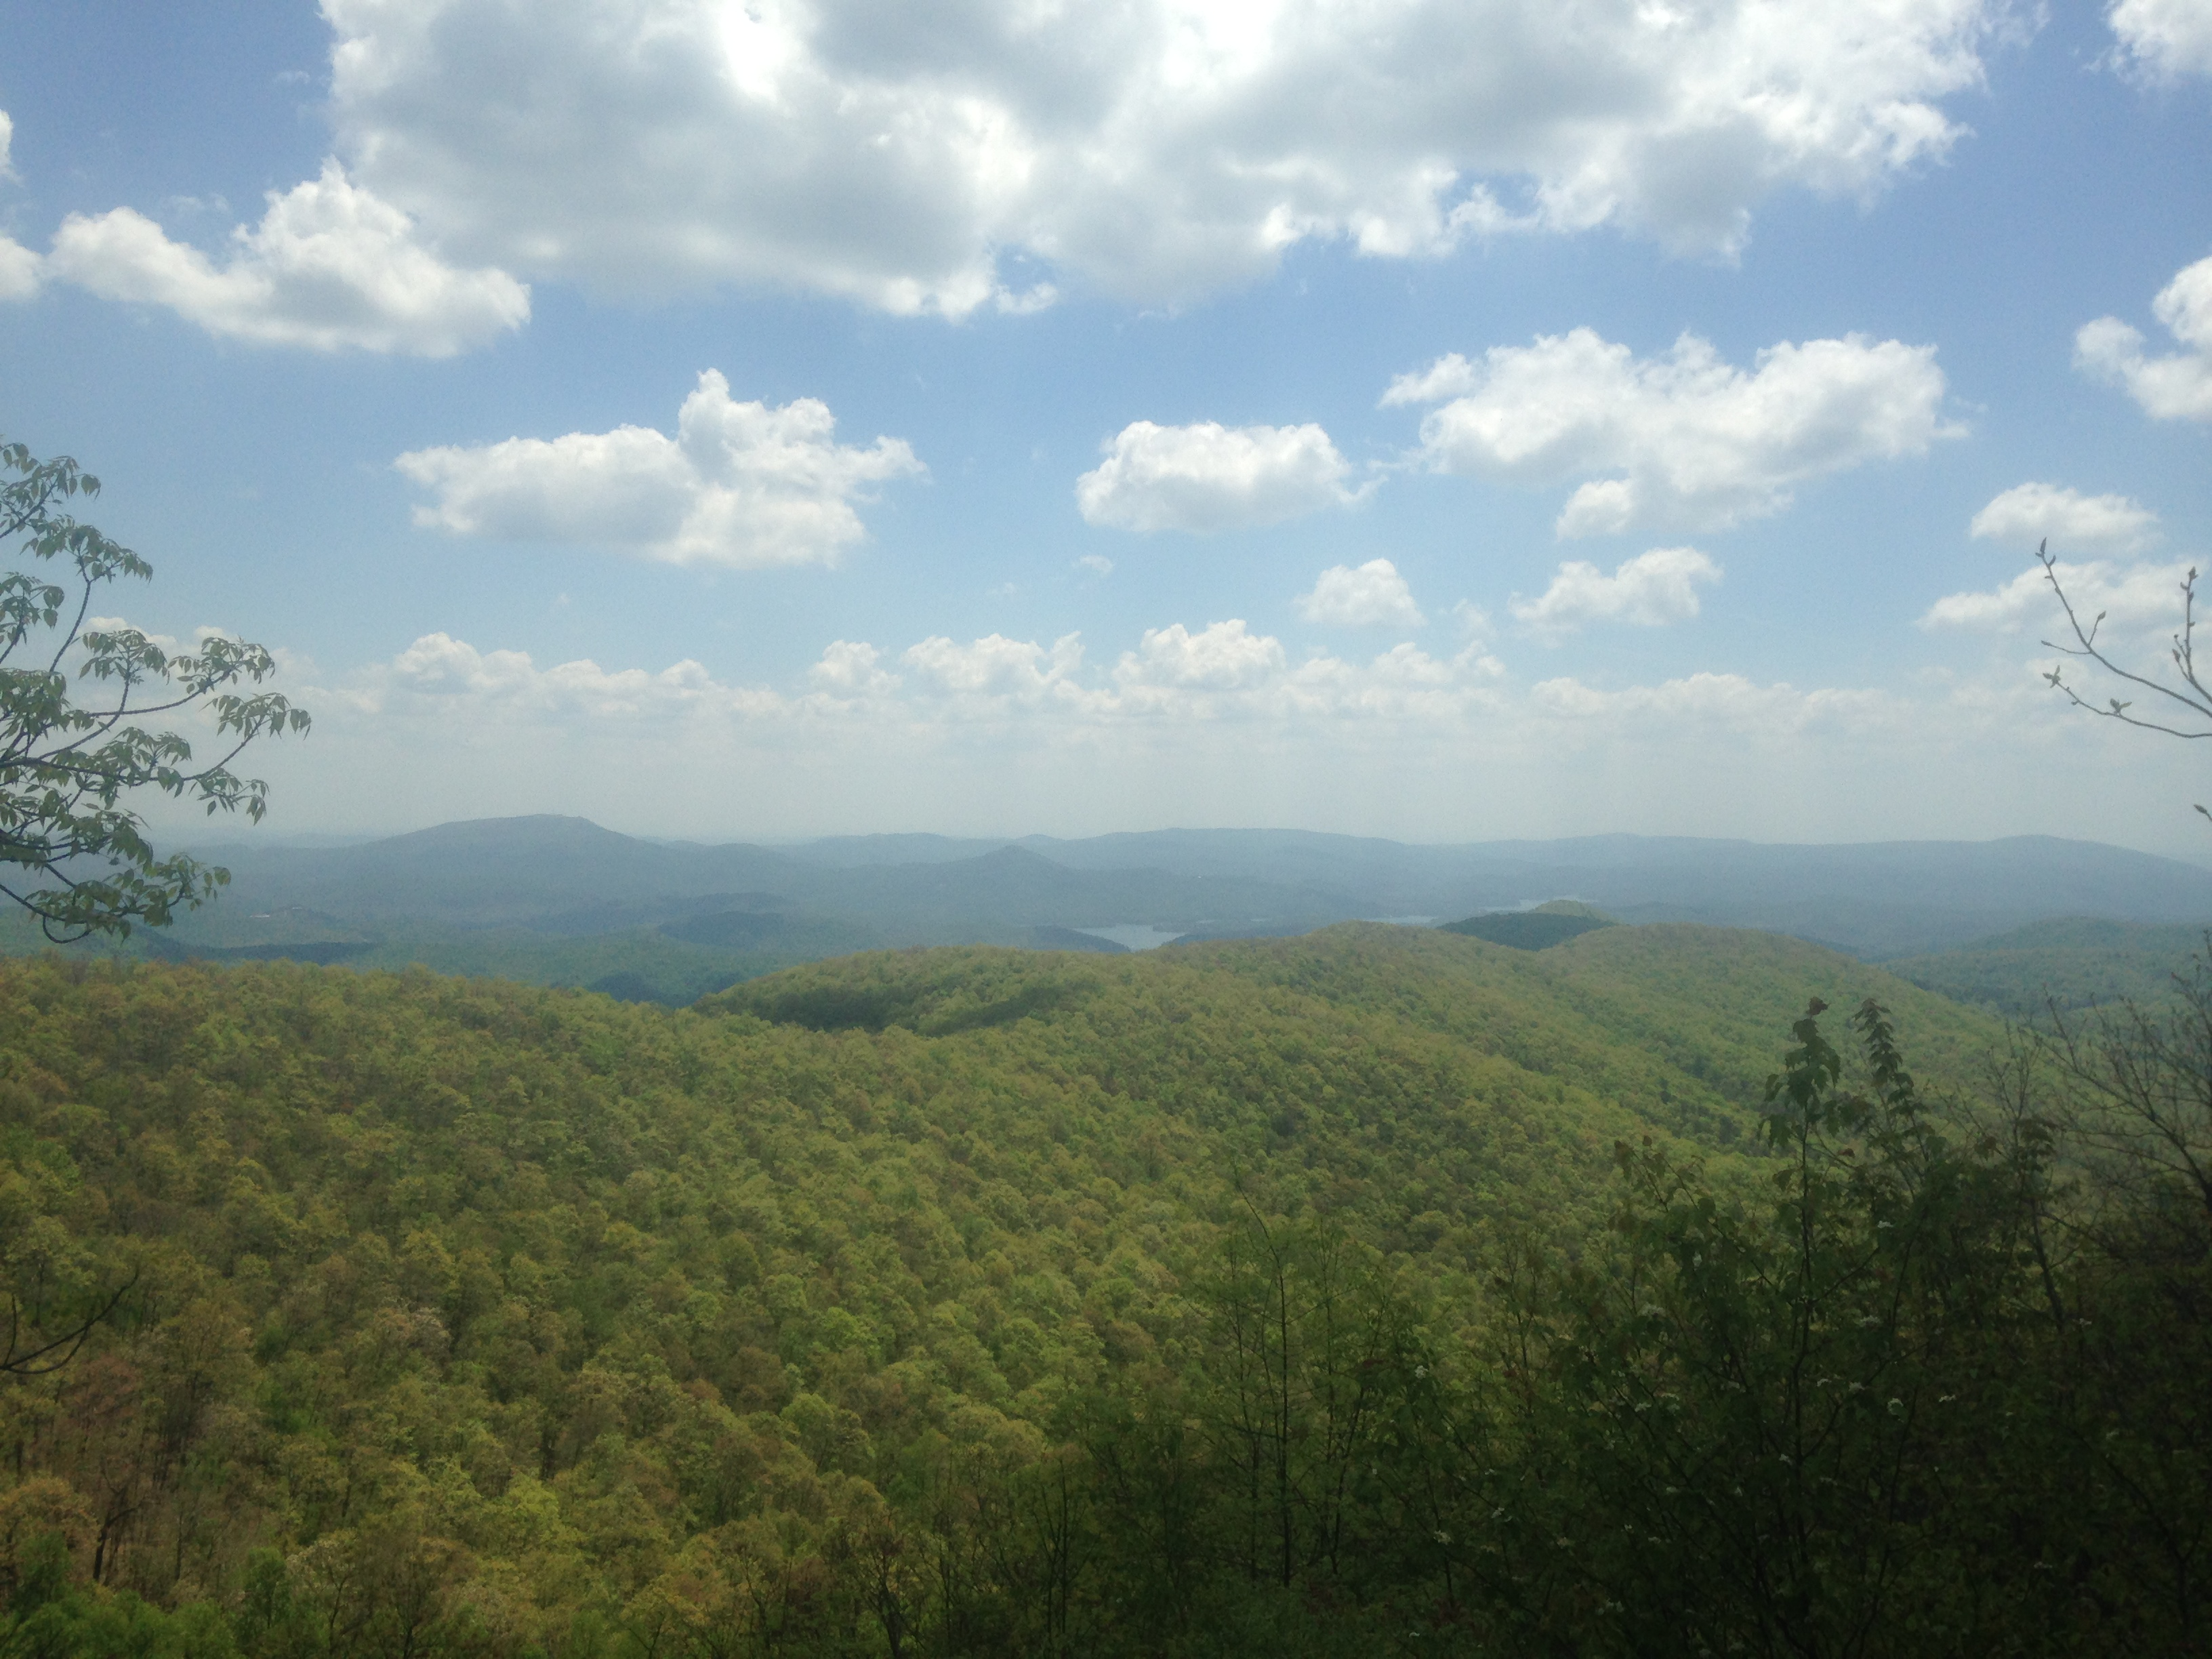 Powell Mountain Vista, GA